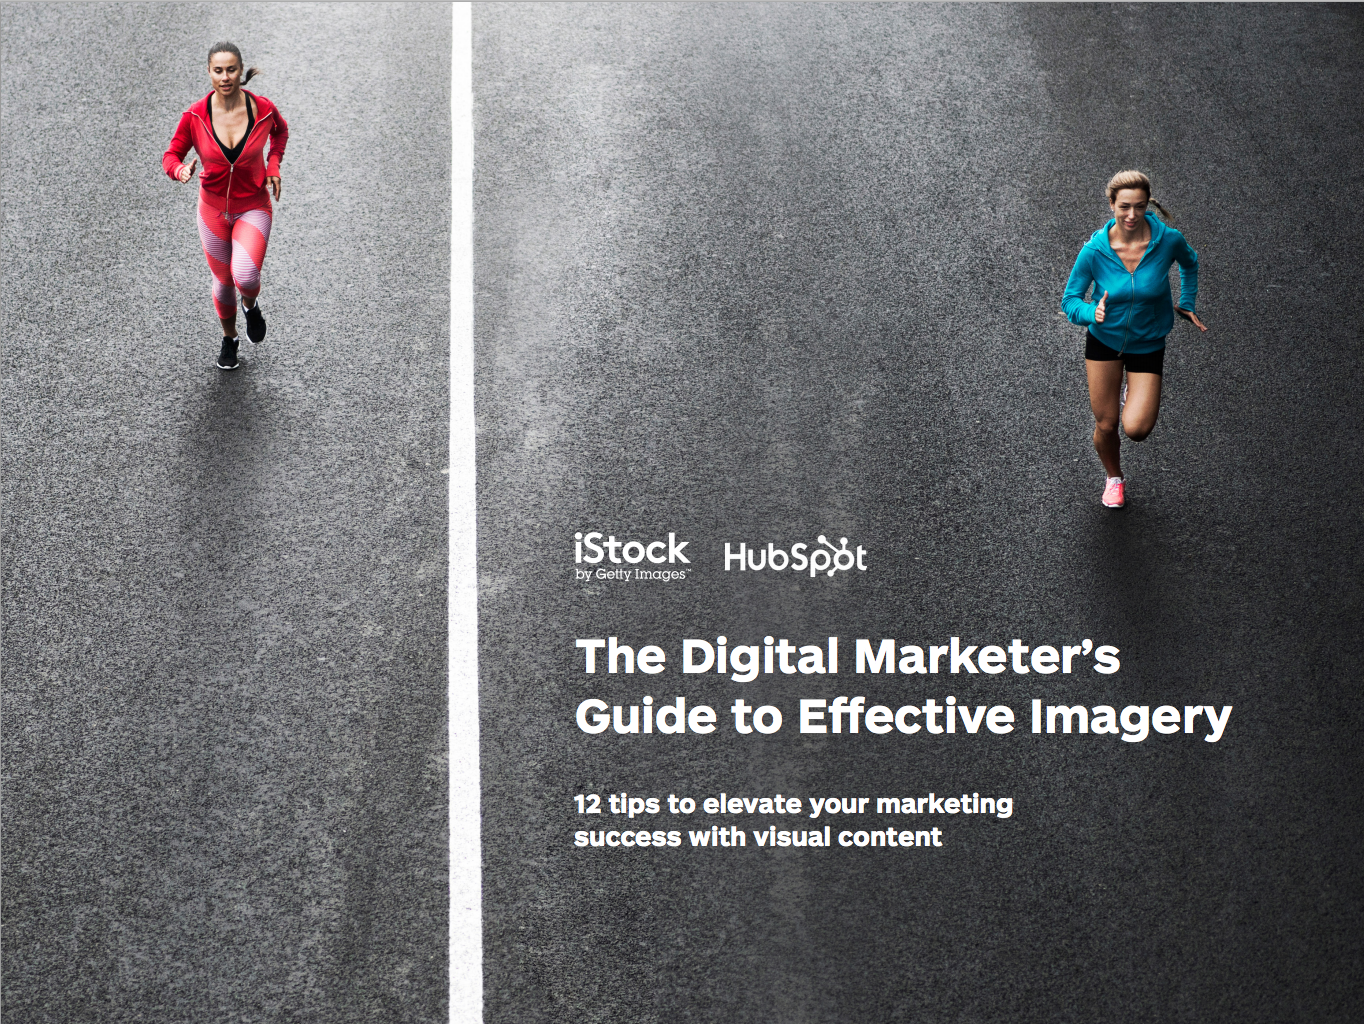 HubSpot_iStock_Ebook_Preview_1